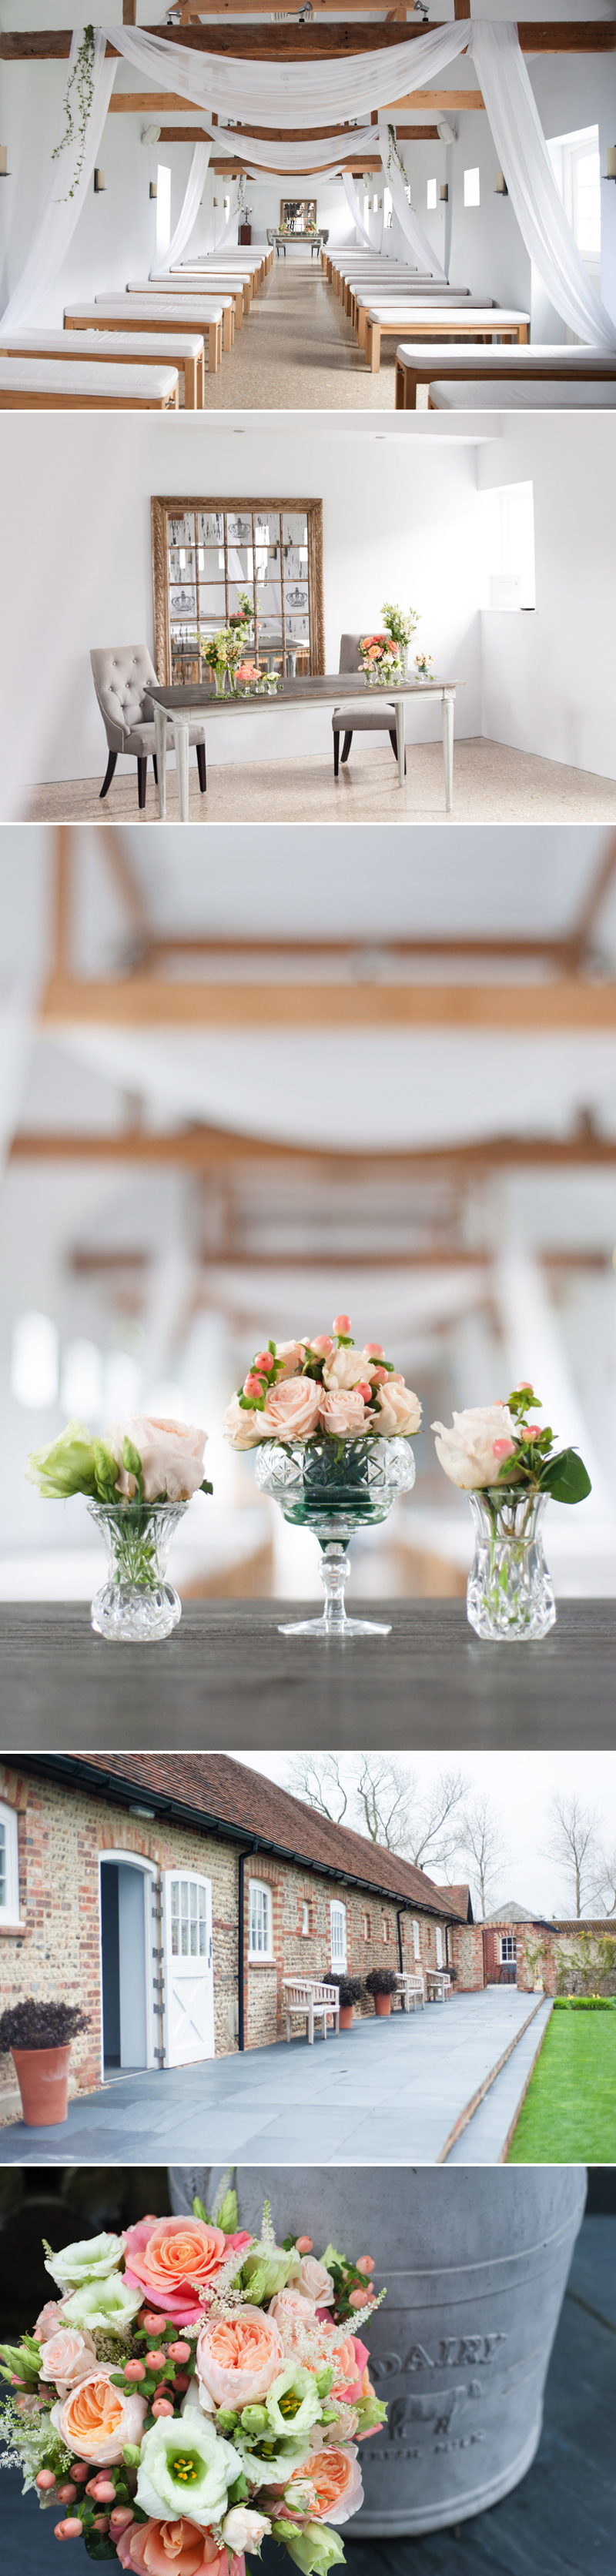 wedding-venues-in-west-sussex-southend-barns-peach-and-mint-wedding-inspiration-styled-shoot-uk-wedding-venue-directory-coco-wedding-venues-001